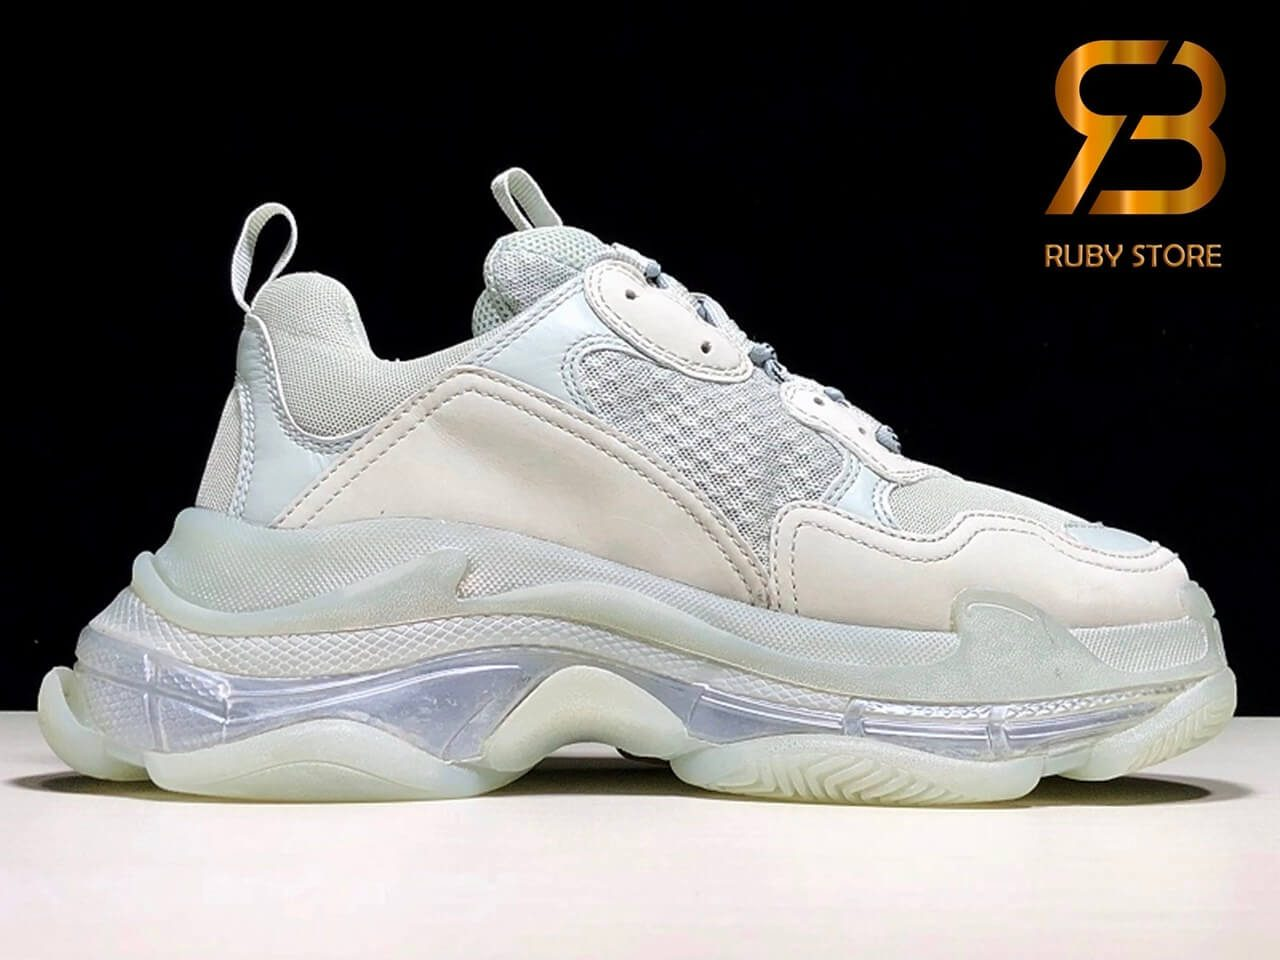 giày balenciaga triple s clear sole gray replica 1:1 siêu cấp